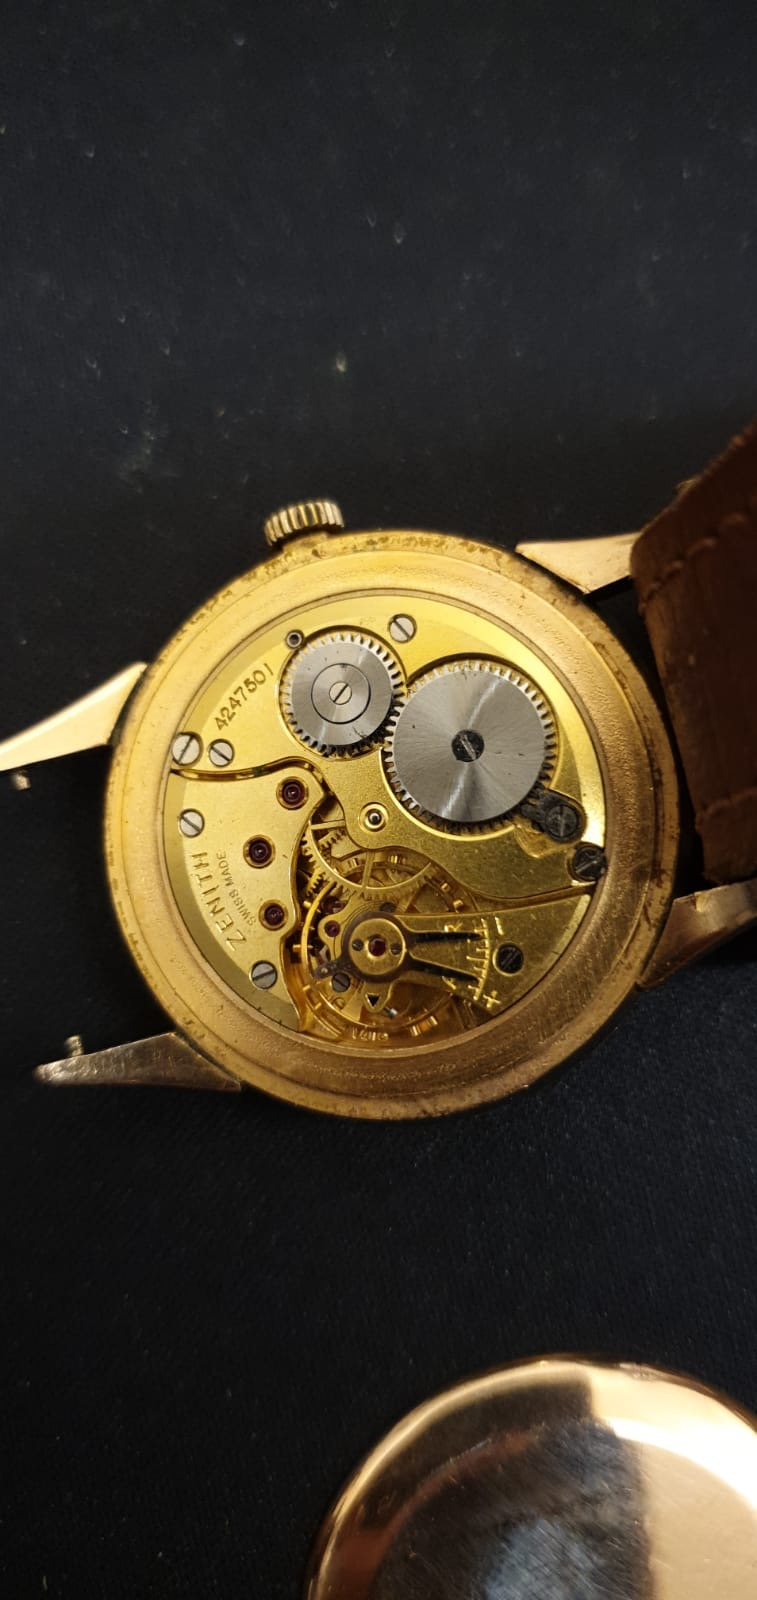 Lot 12 - Zenith Vintage Pink Gold Capped Watch